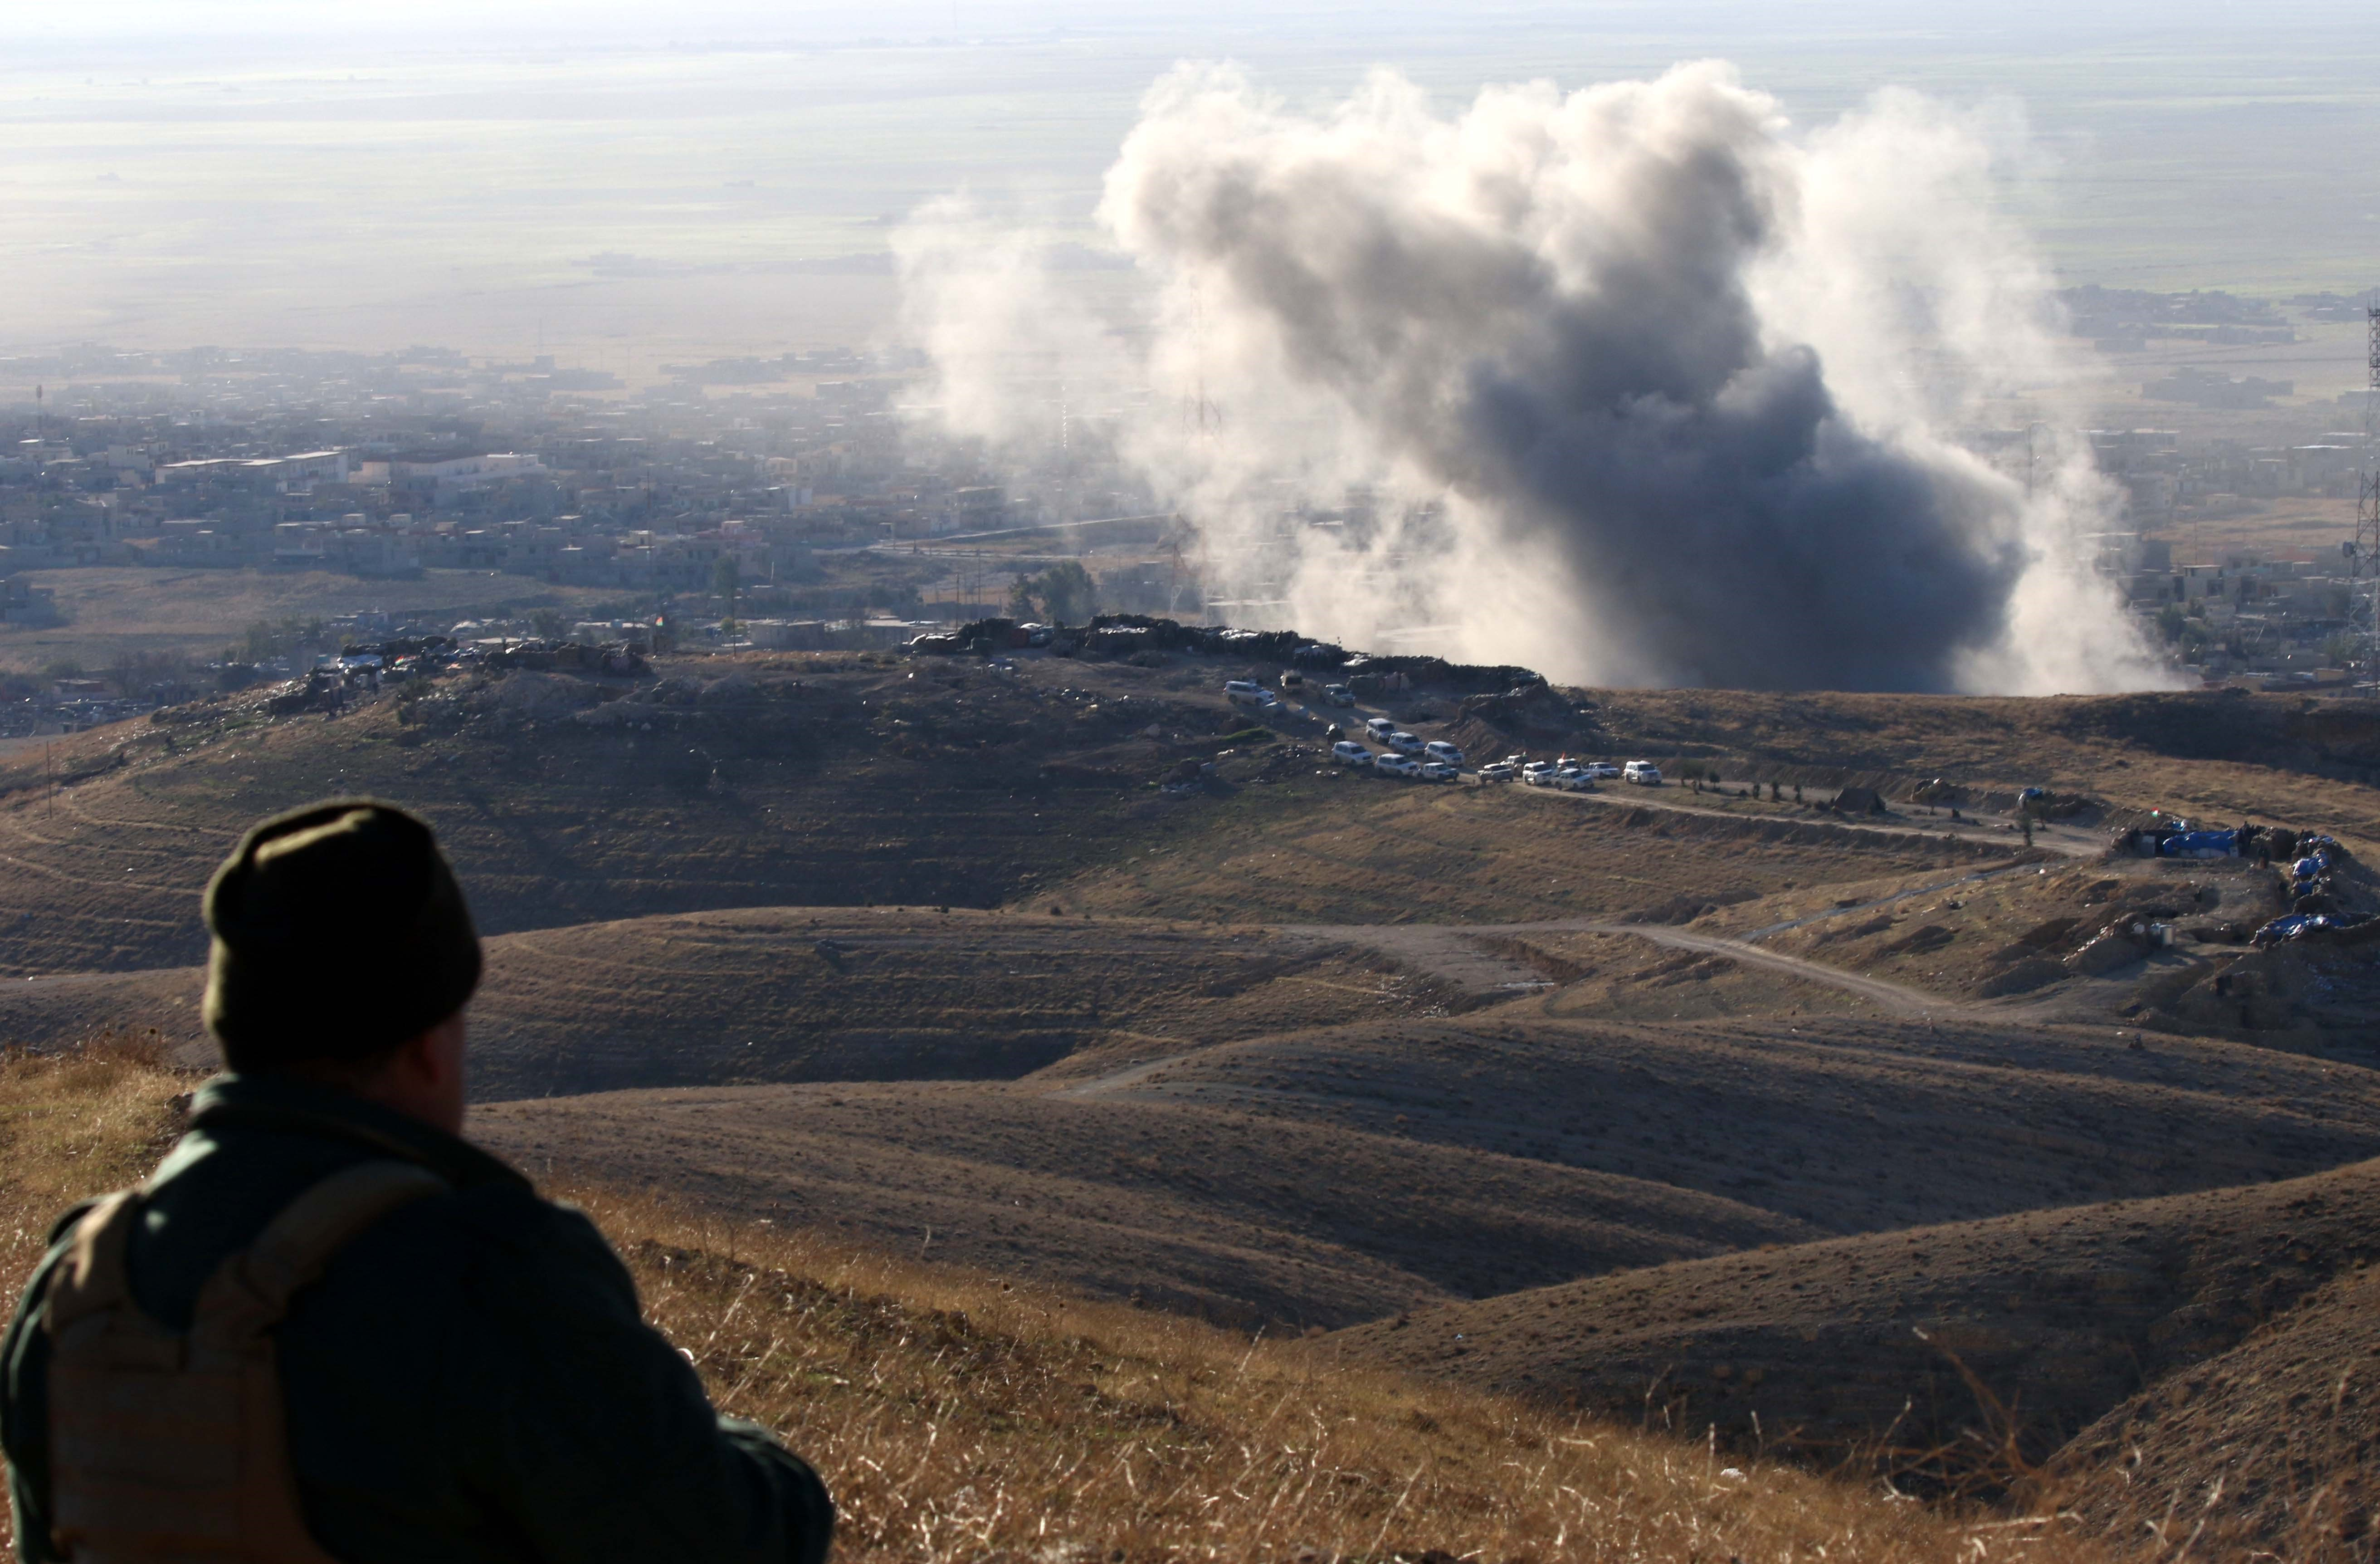 Forward-deployed U.S. troops in Iraq ID targets for airstrikes